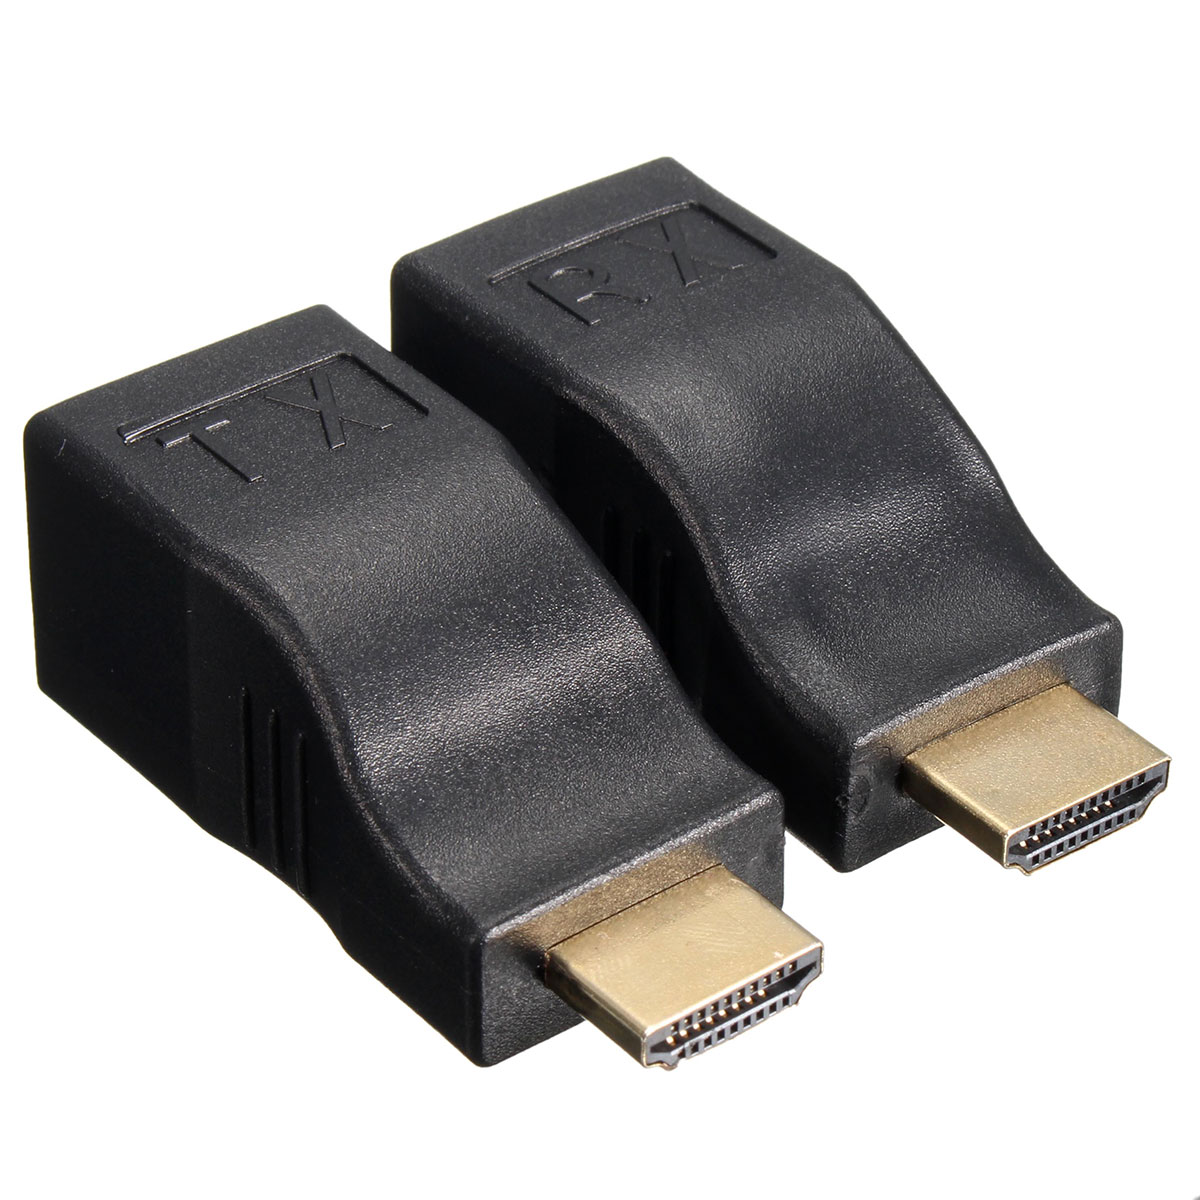 2Pcs HD to RJ45 Network Lan Ethernet Cable Extender Over by Cat 5e/6 HD 1080P 3D